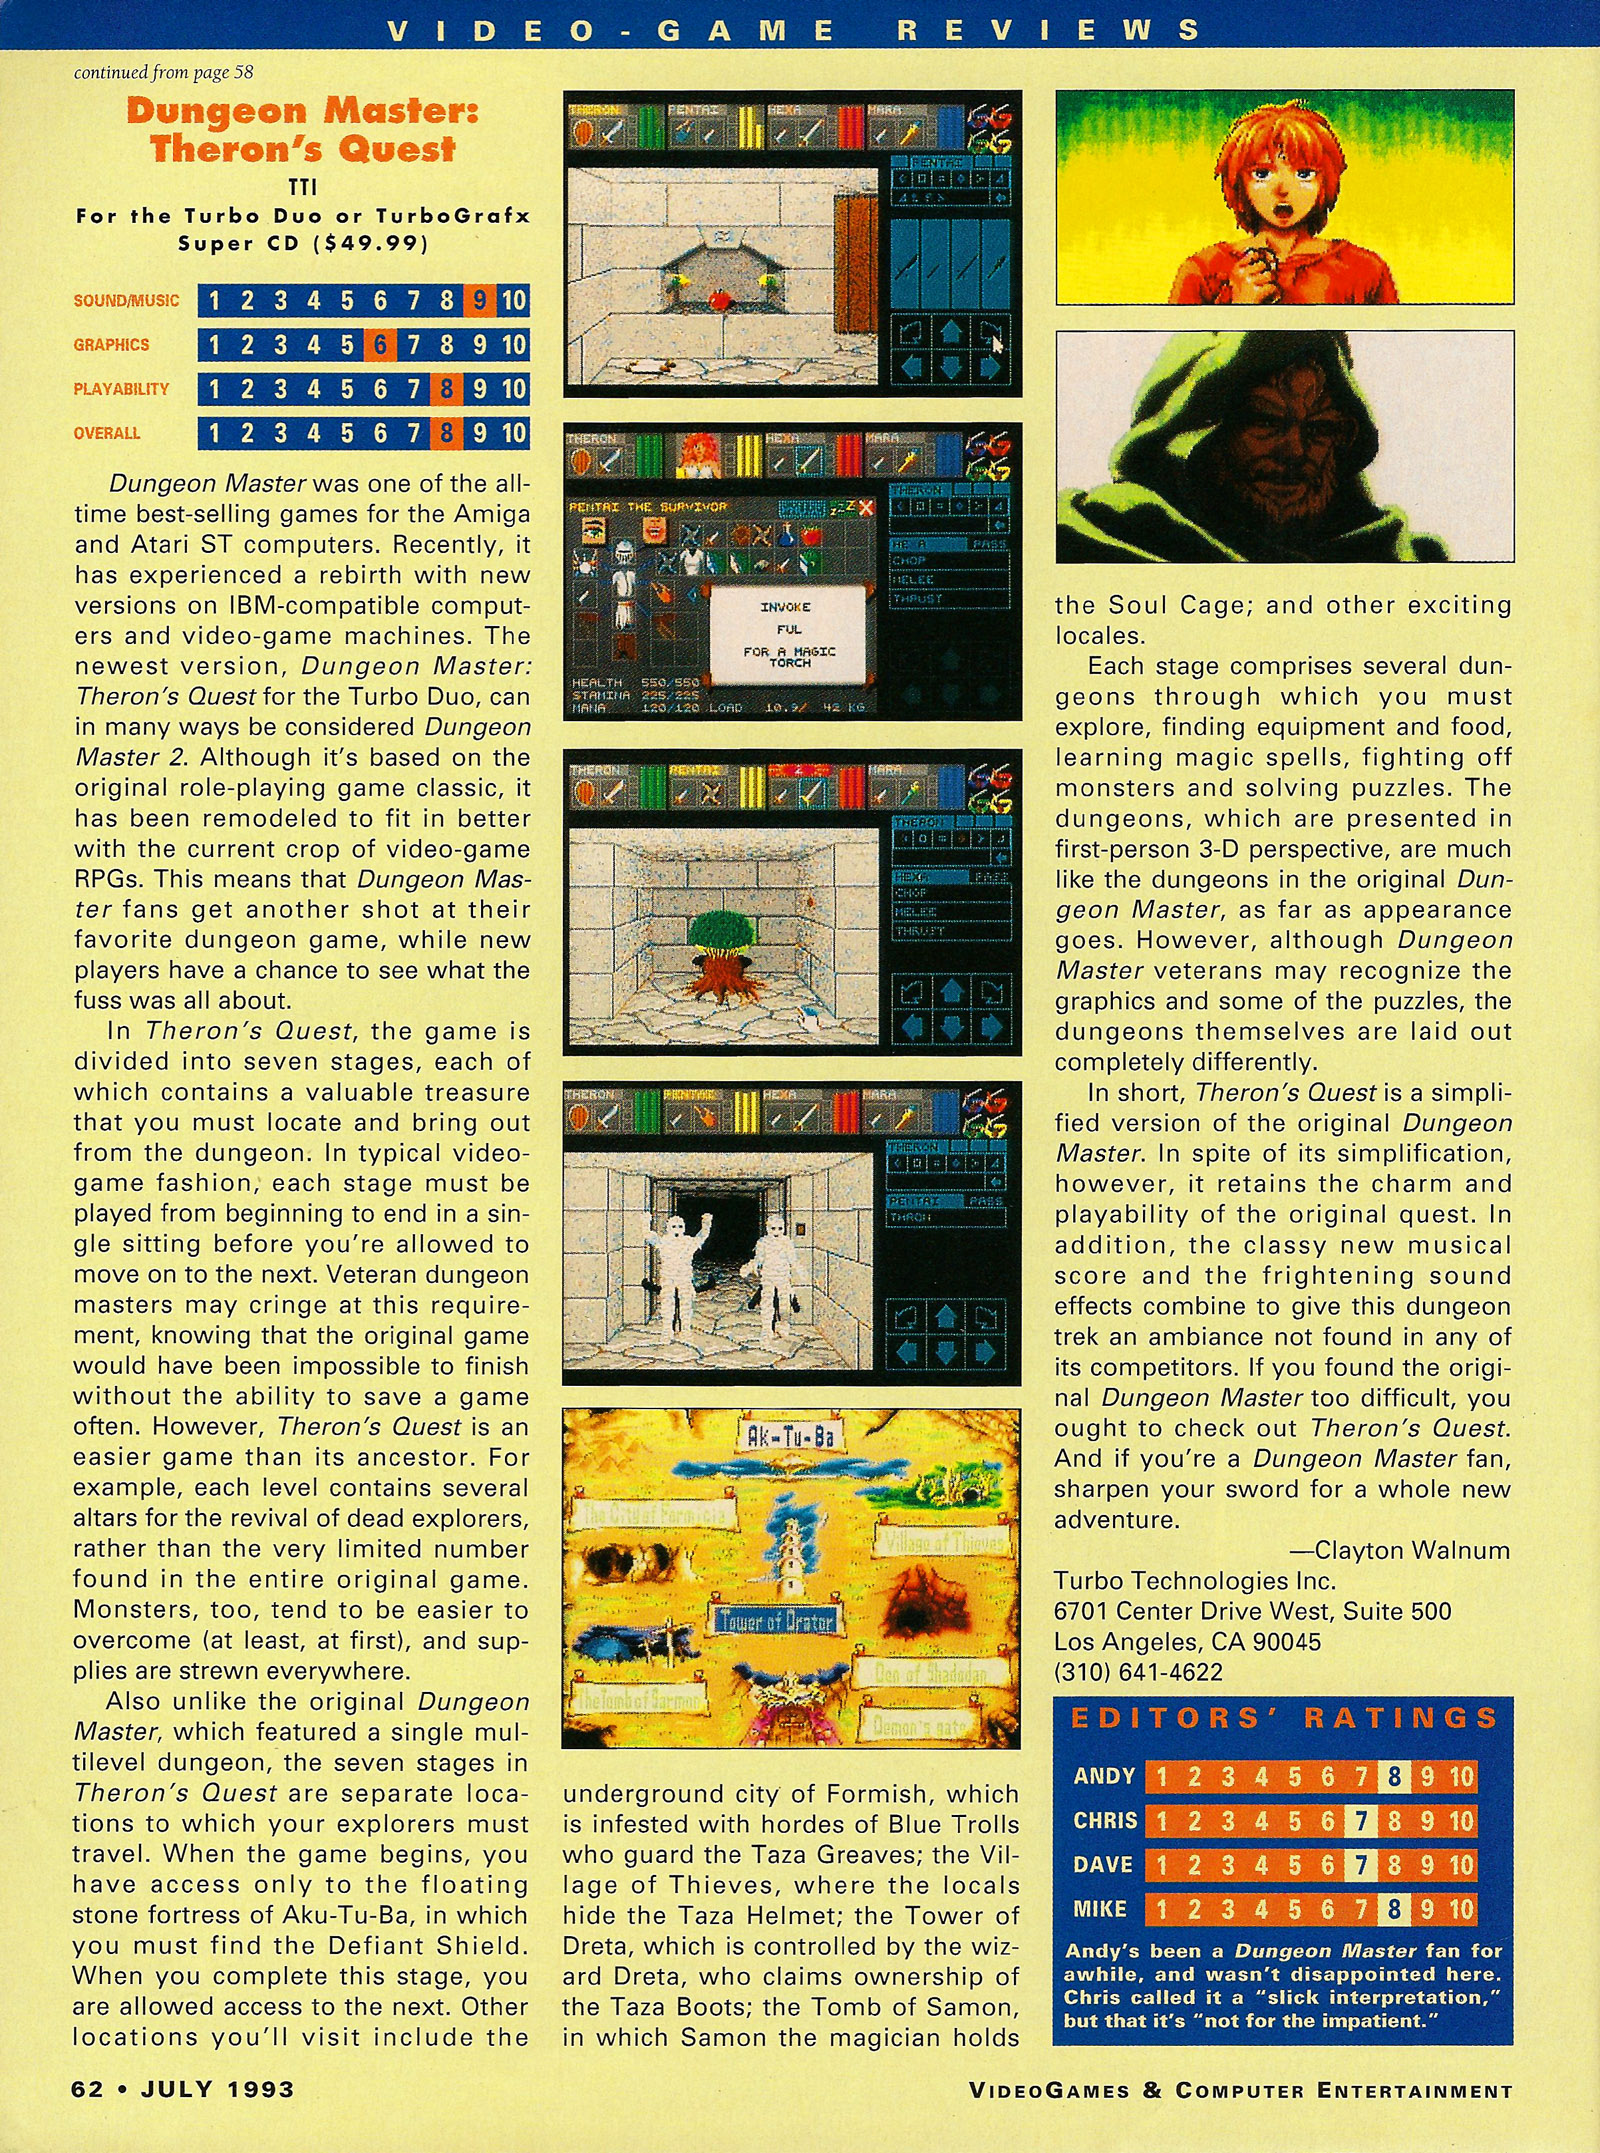 Theron's Quest for Turbografx Review published in American magazine 'VideoGames And Computer Entertainment', Issue #54 July 1993, Page 62